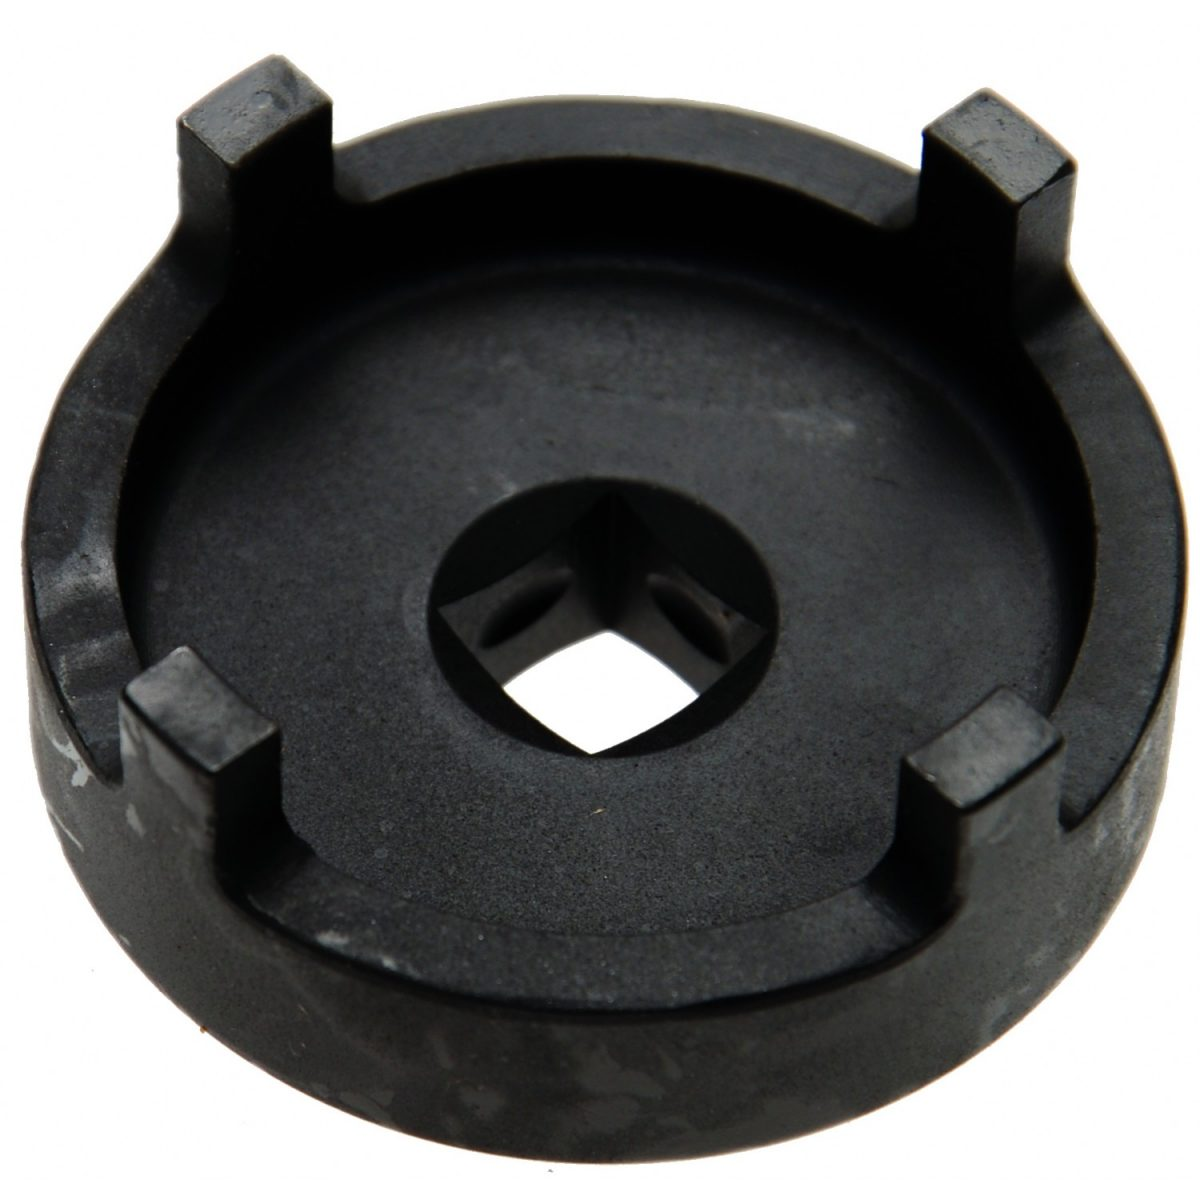 Pin Socket for Mercedes-Benz M-Class Joints (8575)